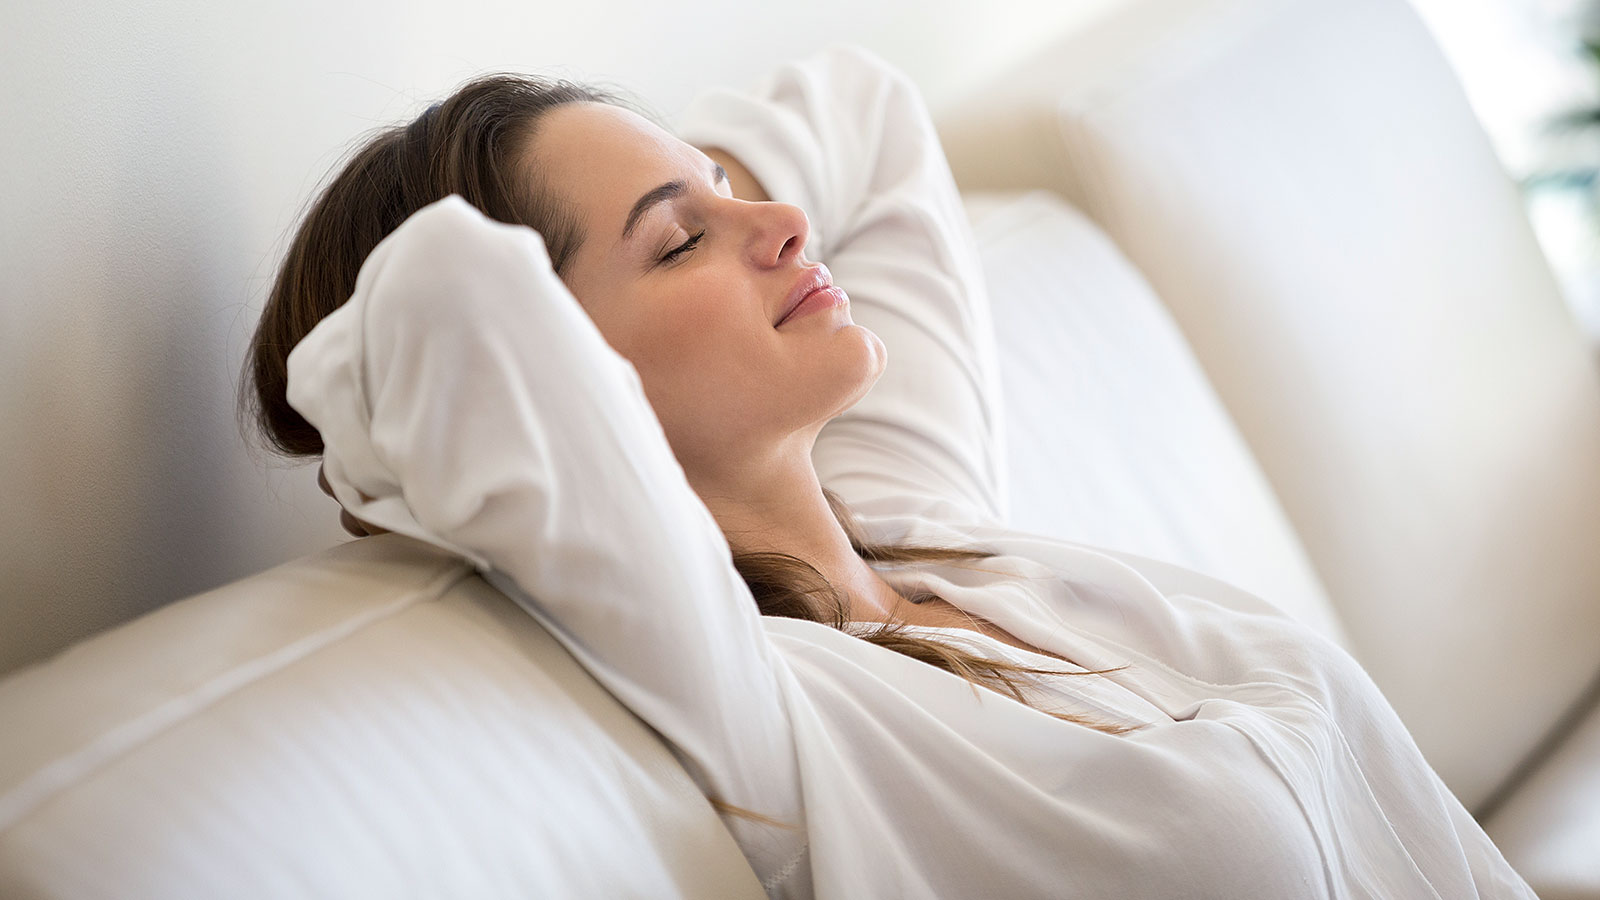 The right way to nap to boost performance